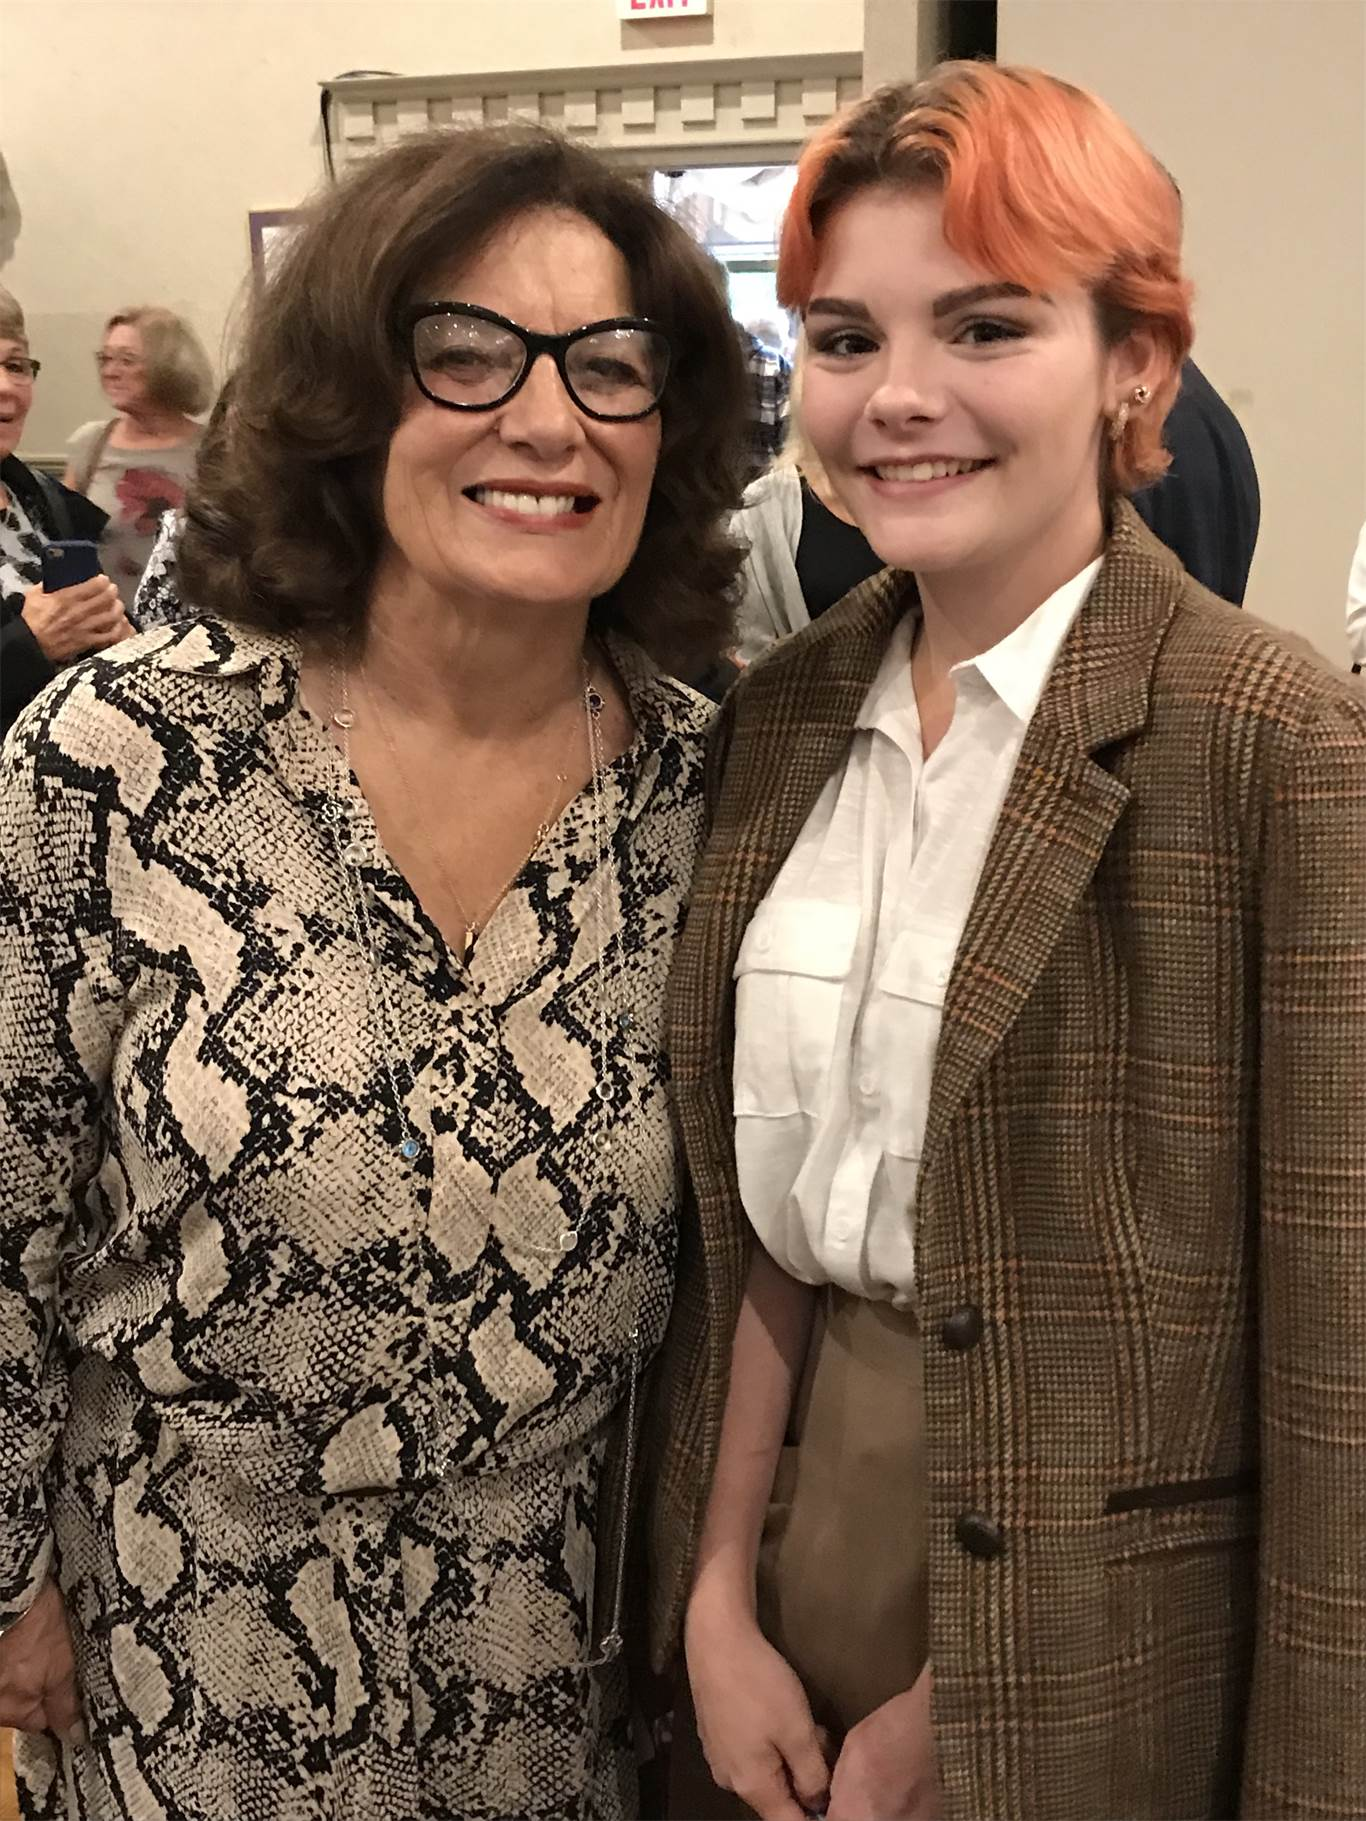 Ceirrah with keynote speaker Margaret Trudeau. Trudeau shared her personal challenges with mental health and gave advice for maintaining positive mental health, which included: healthy eating, proper sleep and daily exercise. Photo courtesy of Emidio Piccioni.